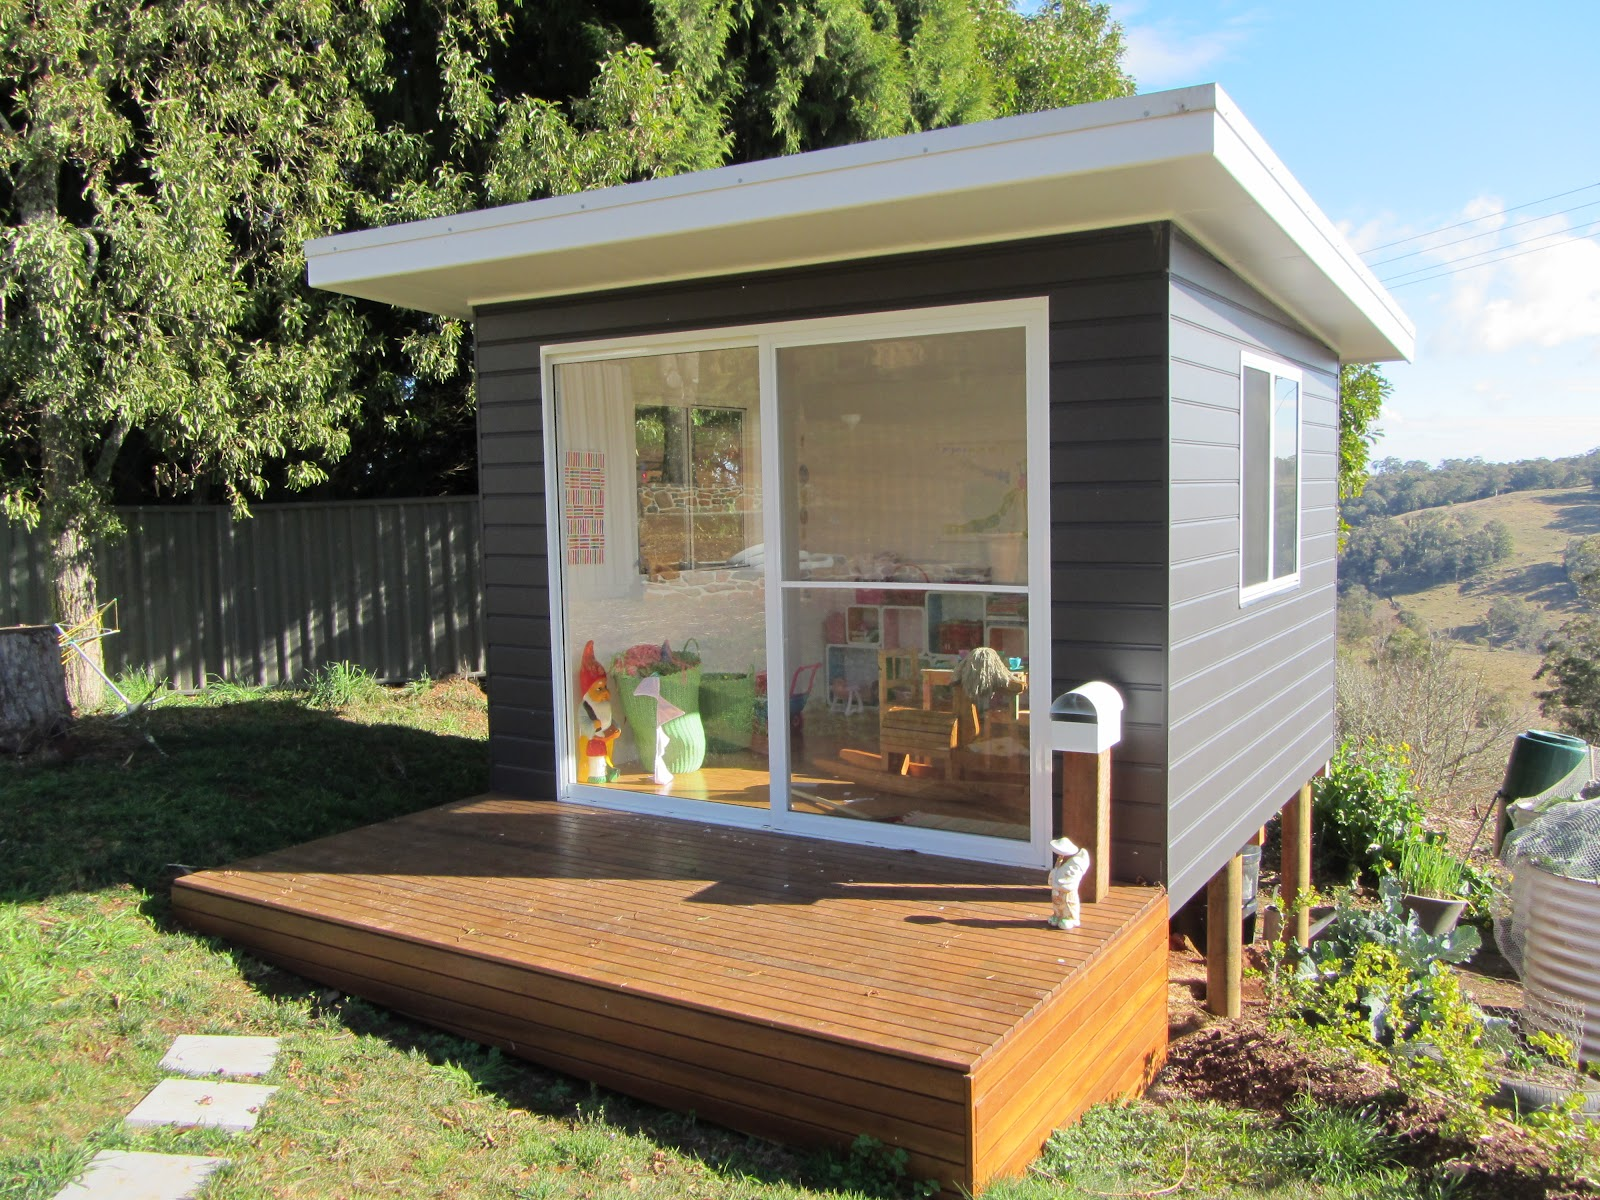 Pulmonate 39 s design architecture blog kids cubby house - Design your own home for kids ...